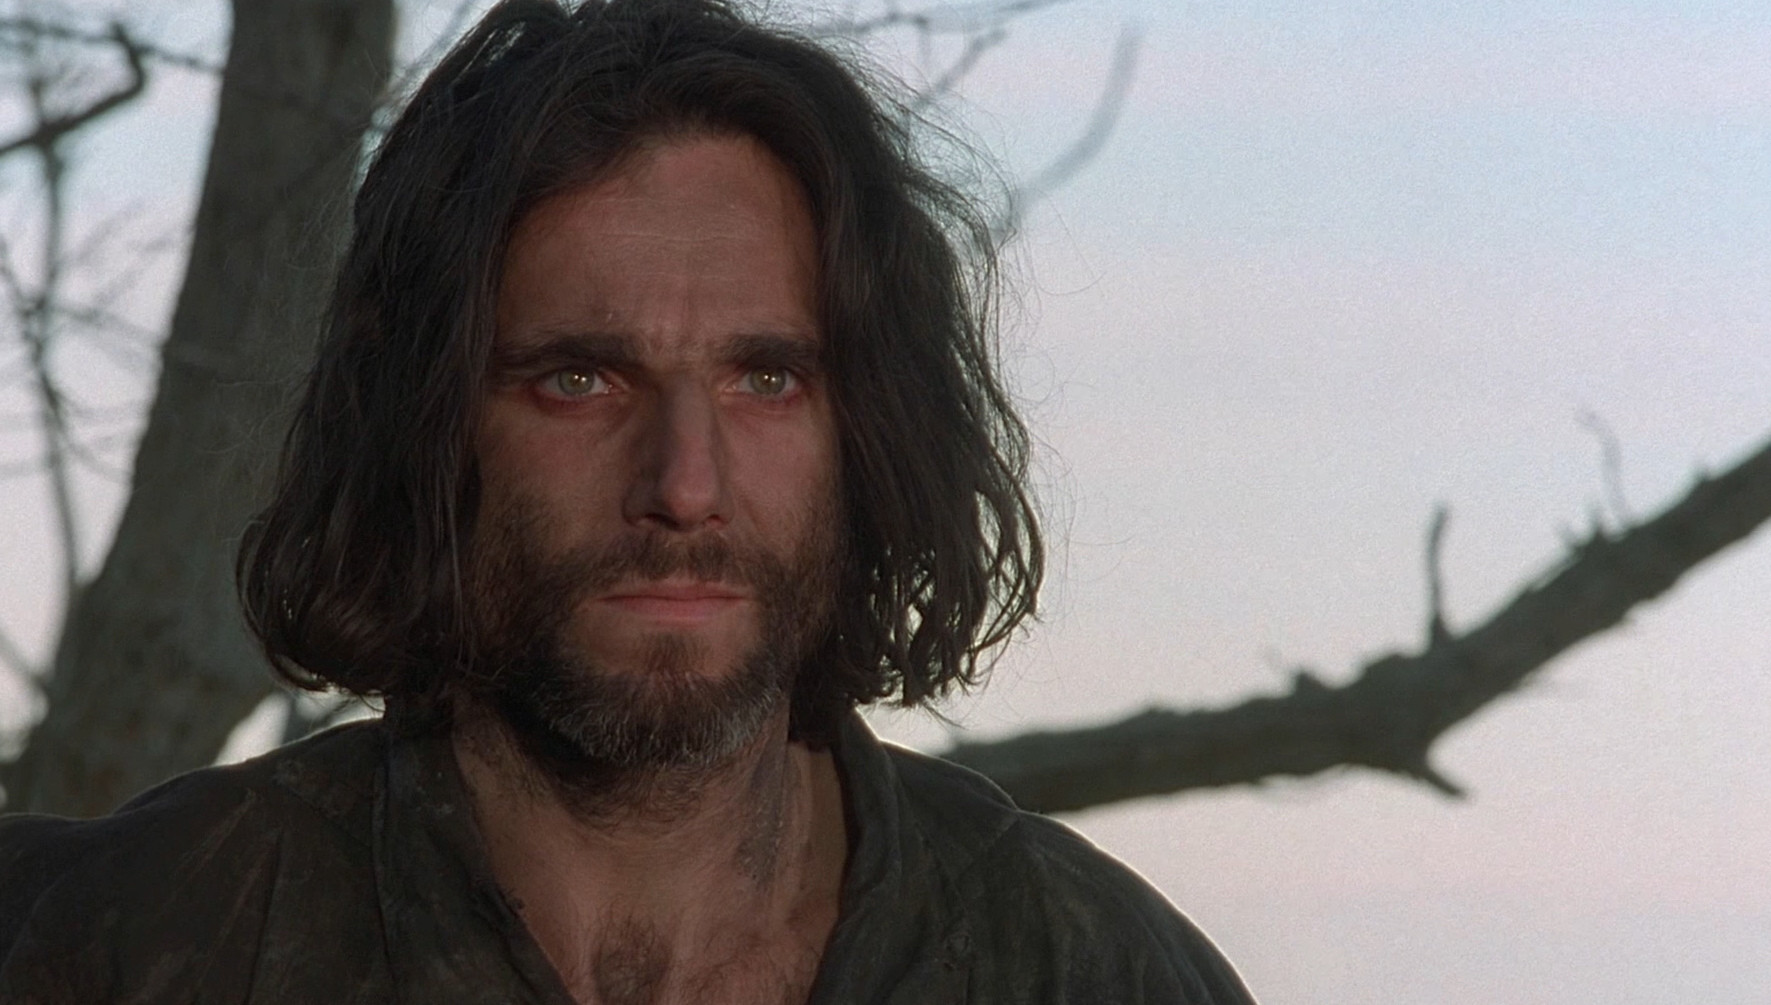 john proctor s role in the The wife of john proctor, elizabeth shares with john a similarly strict adherence to justice and moral principles she is a woman who has great confidence in her own .